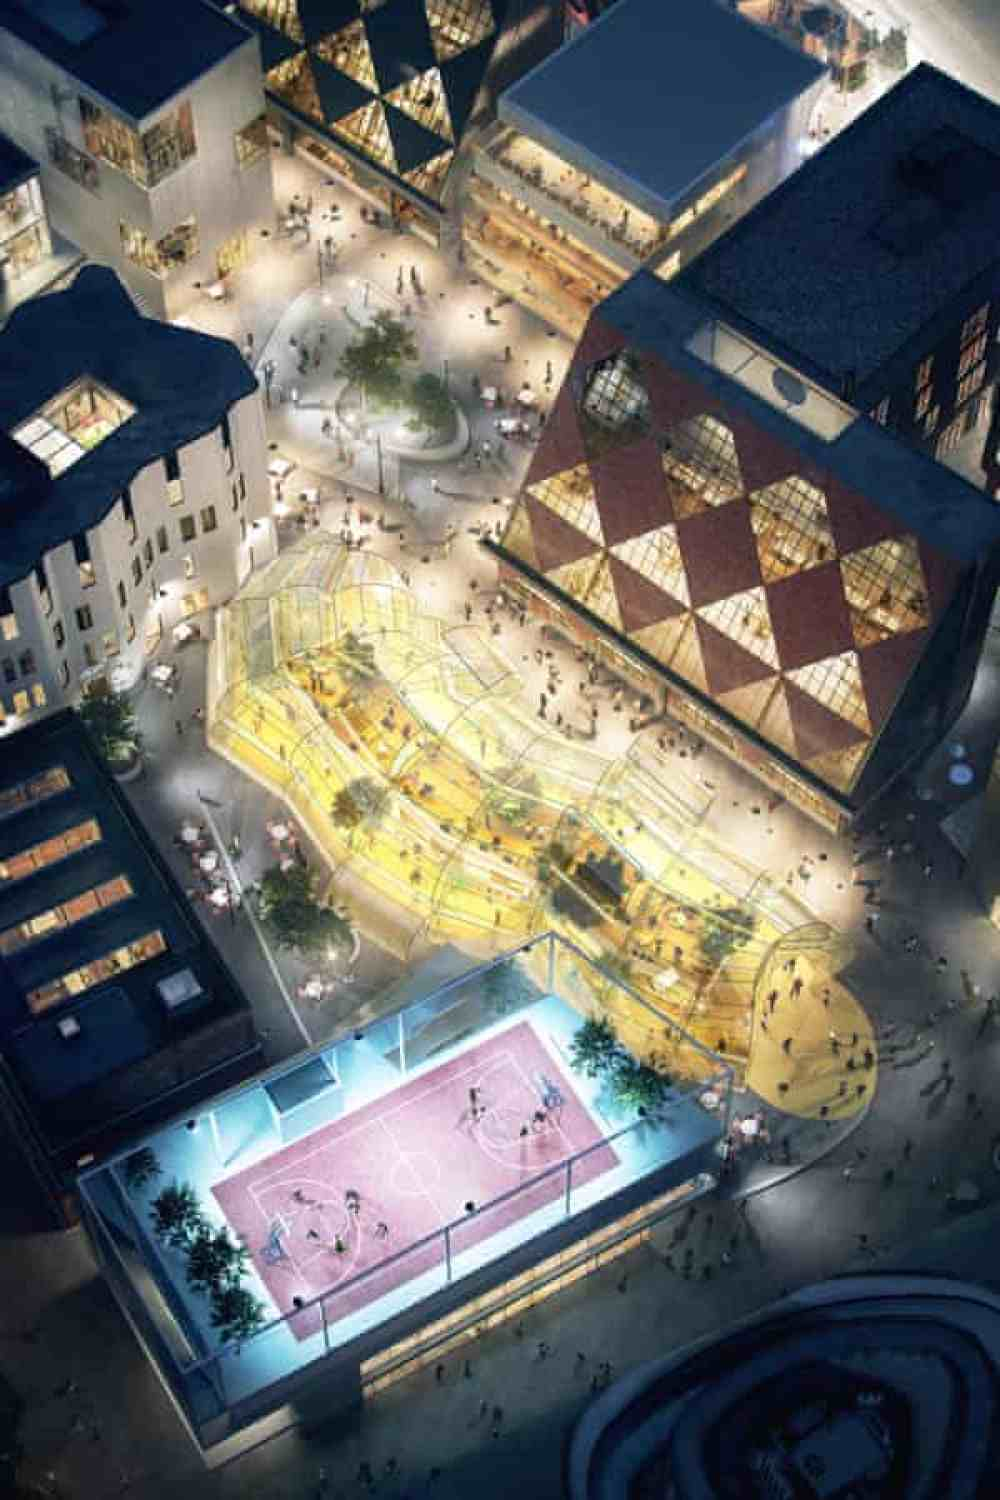 a CGI impression showing Architecture 00's rooftop basketball court.